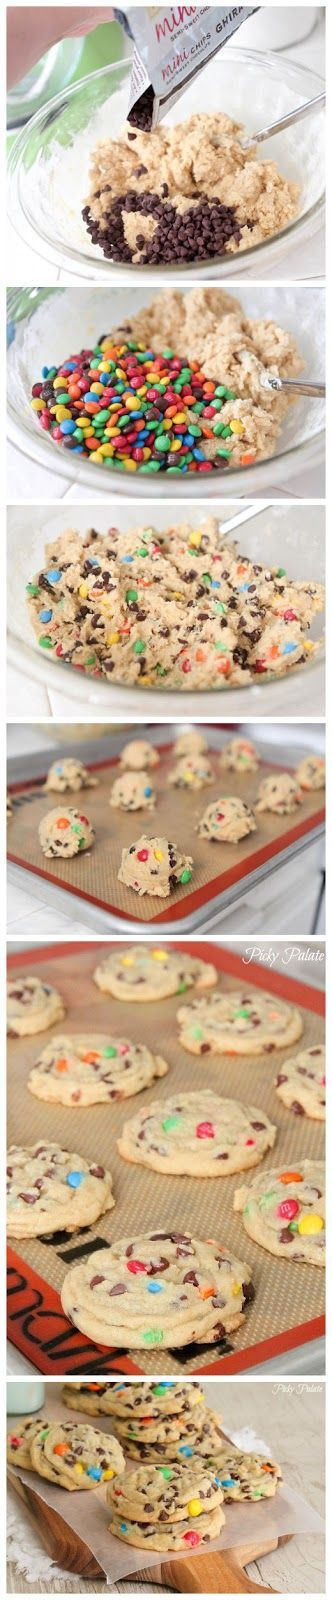 amp m cookies how to make perfect m amp m cookies we re sure you ll ...